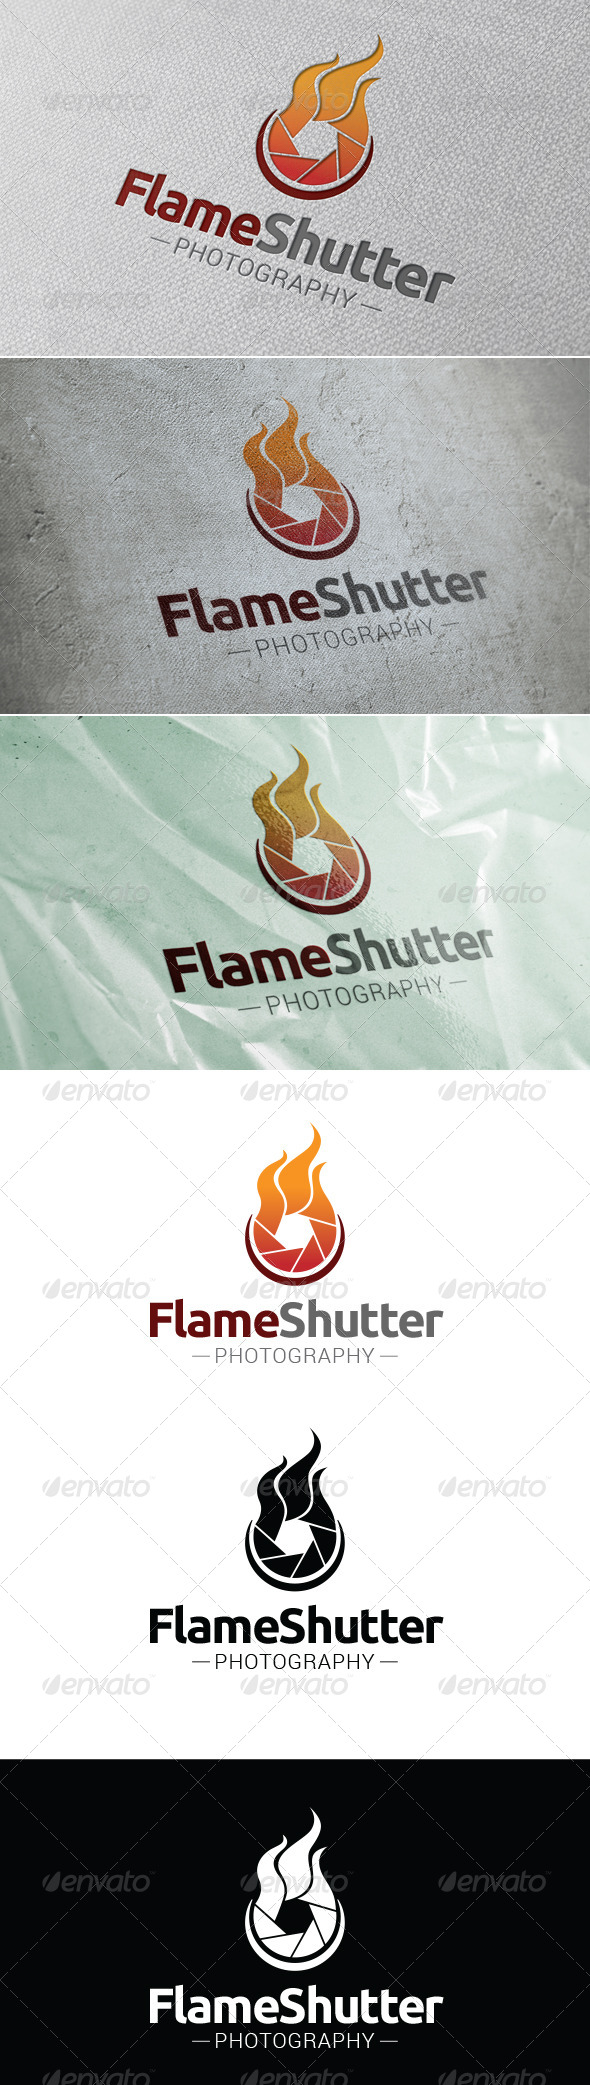 GraphicRiver Flame Shutter Logo Template 7477018